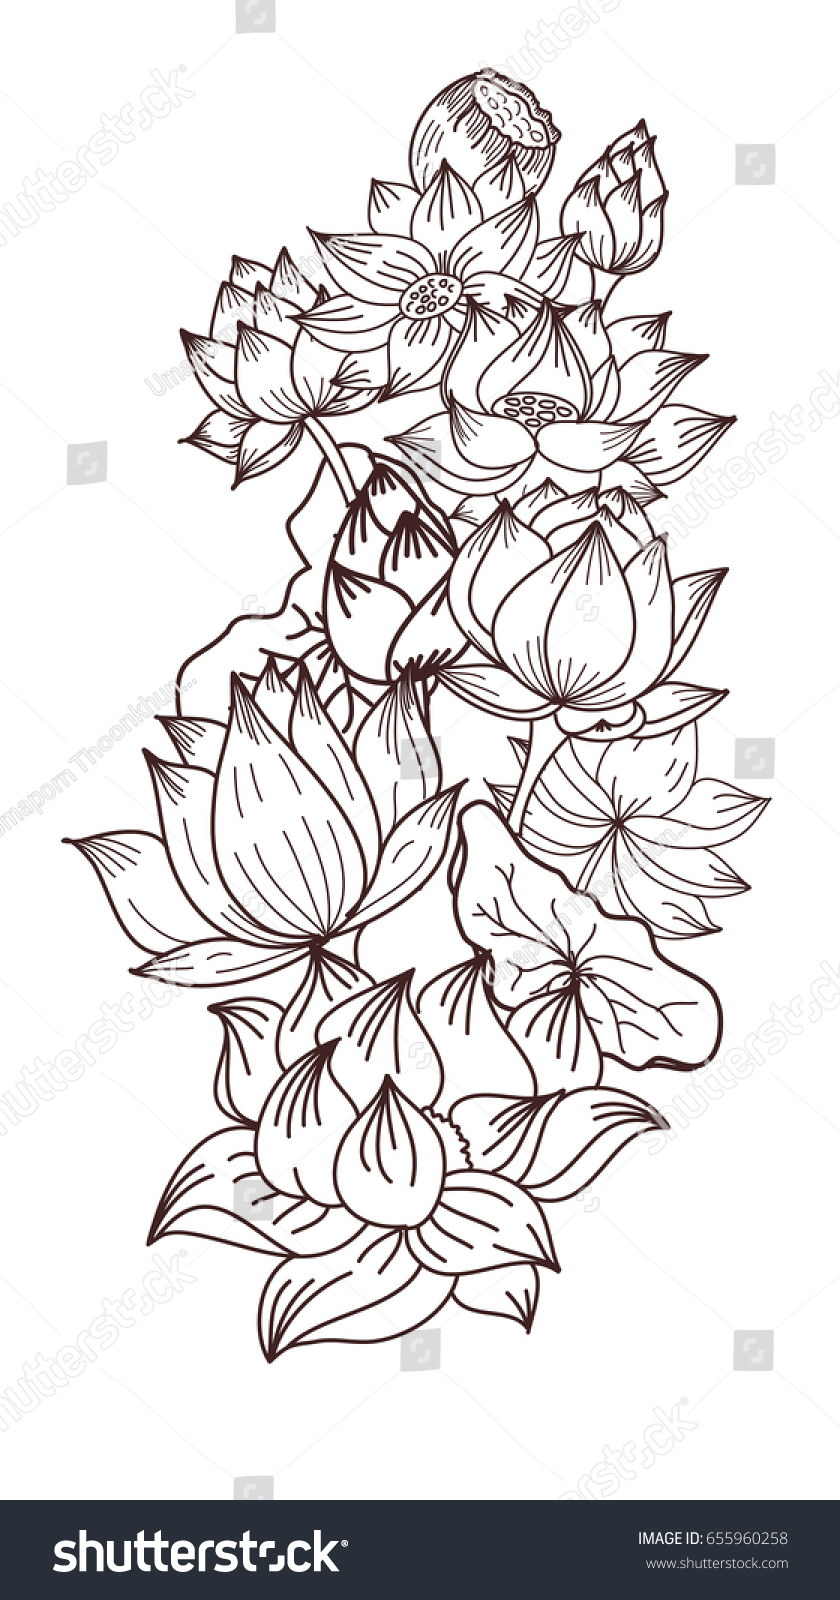 Hand Drawn Lotus Flowervector For Coloring Book Flower Of Buddha